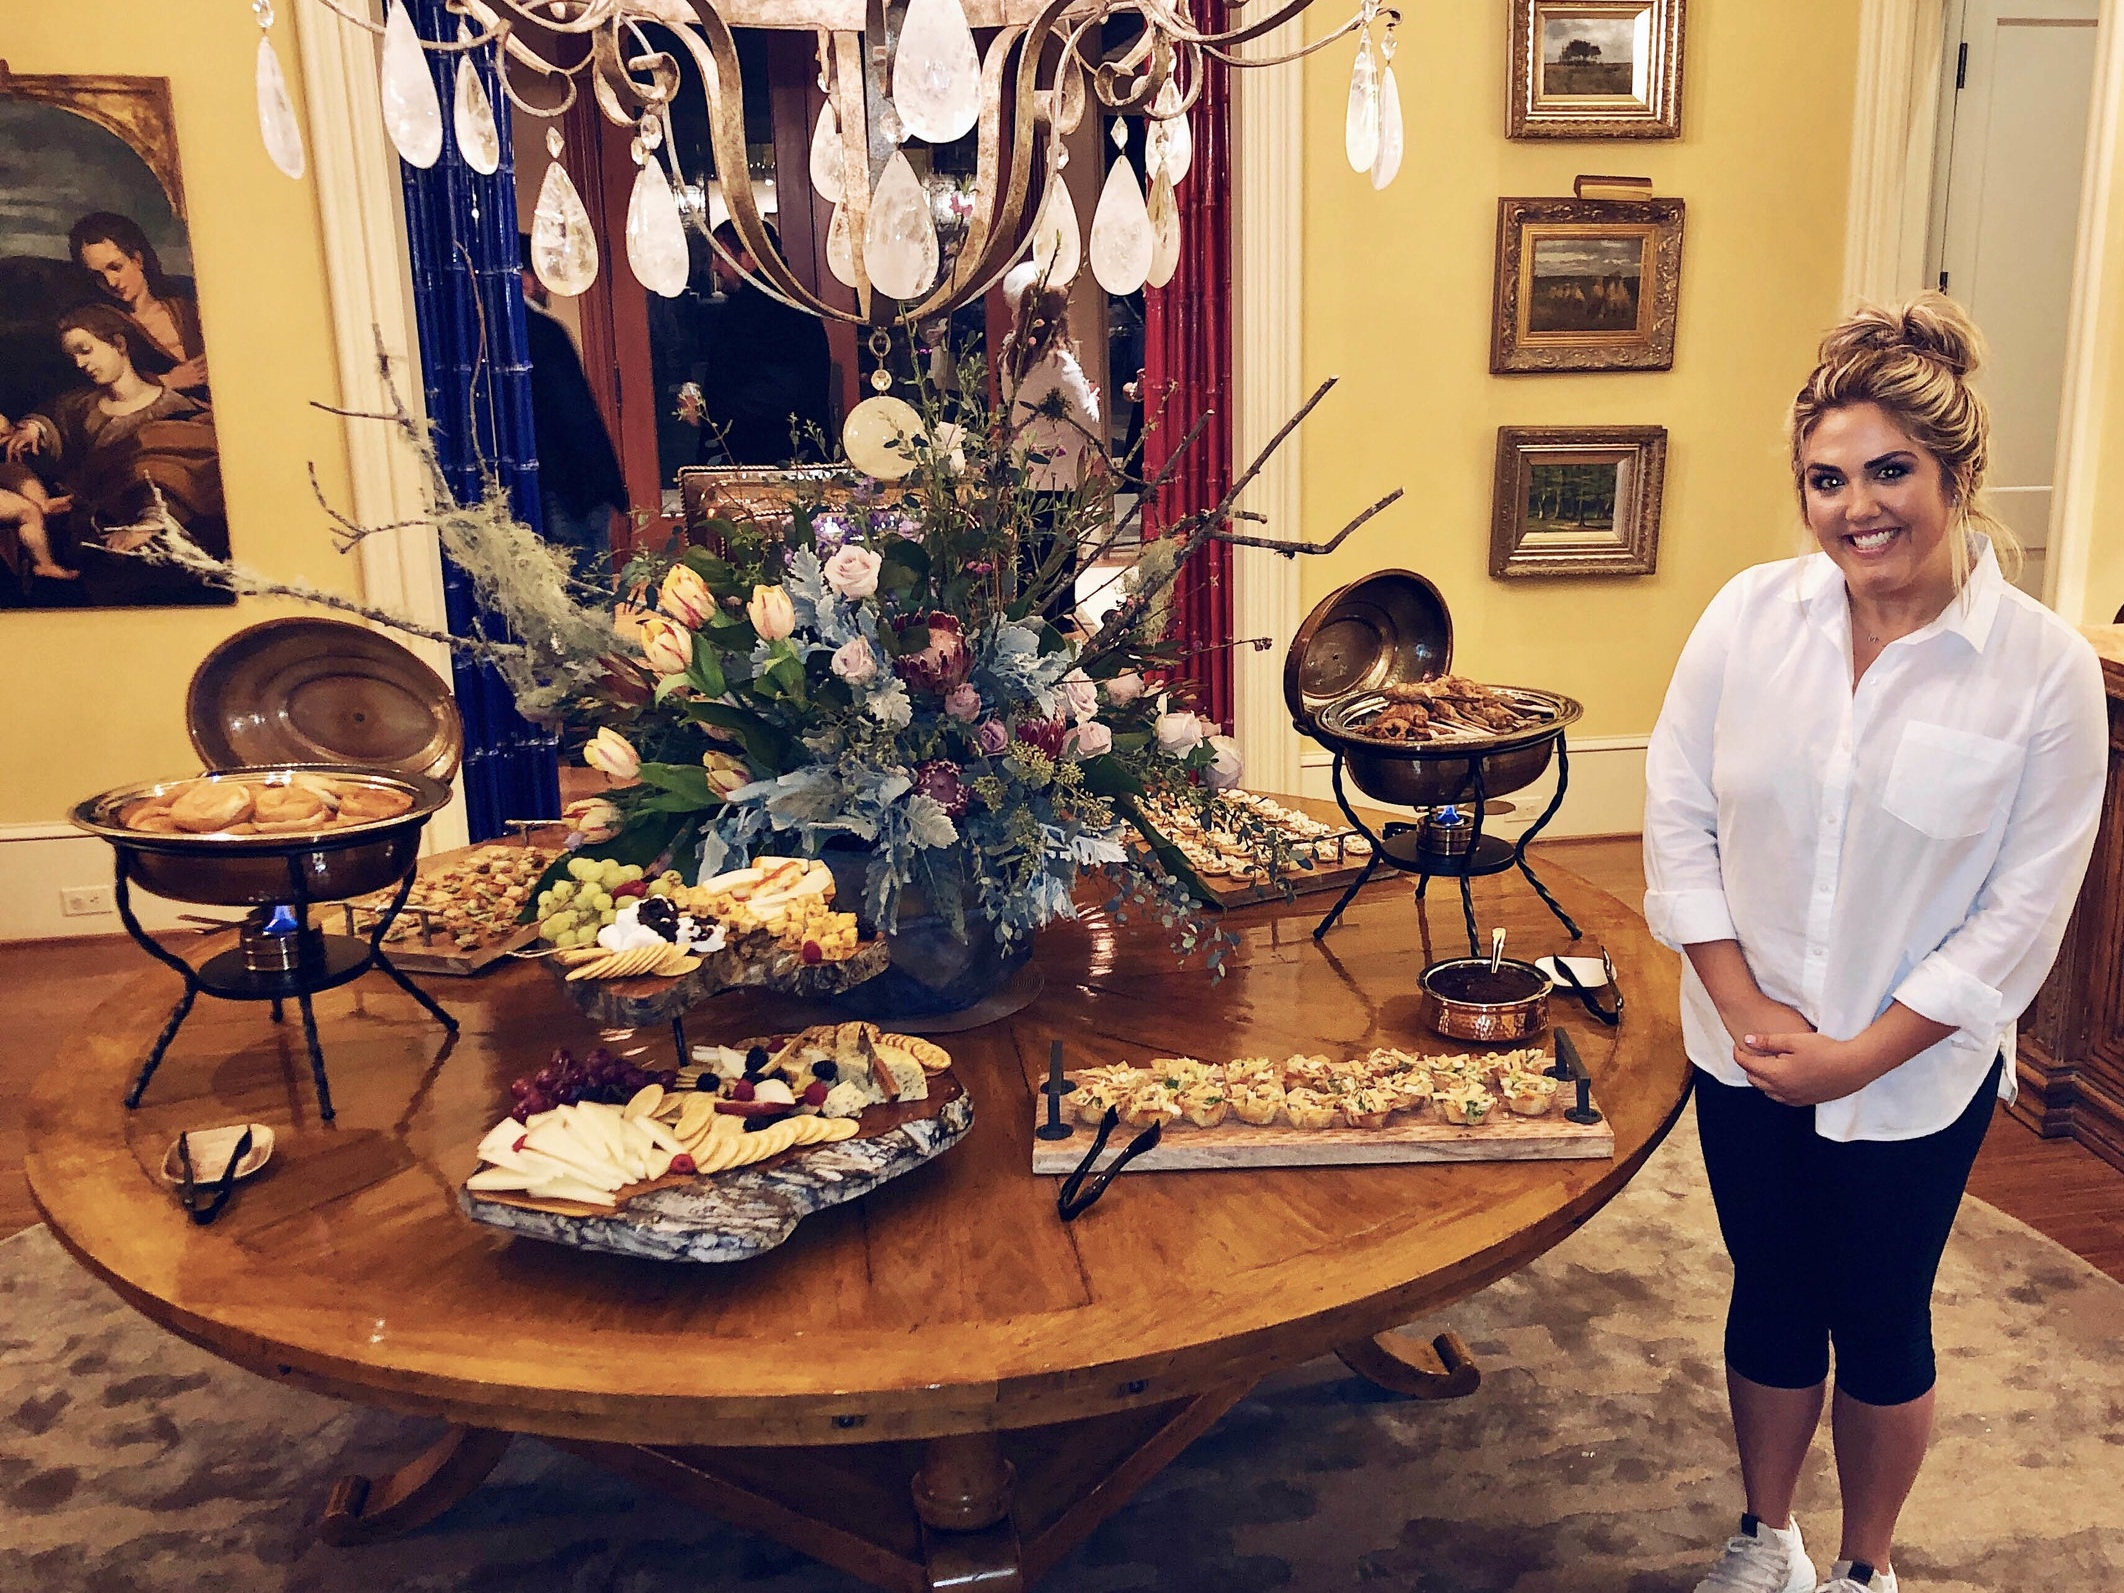 Marjorie with a spread she created for an engagement party at Margaret and Philip Mobley's home.